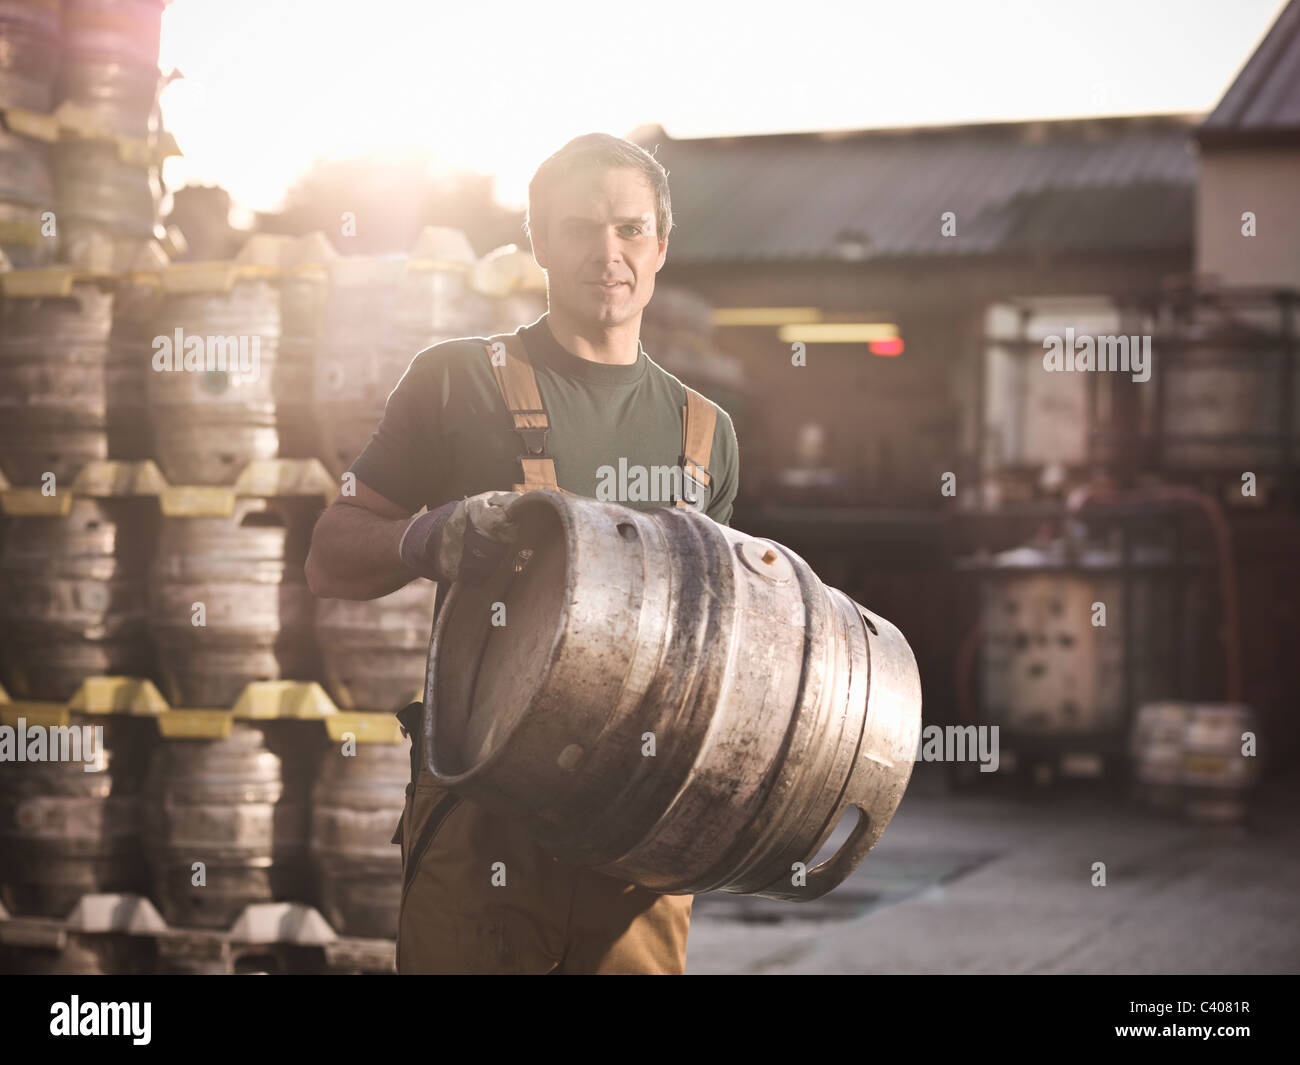 Worker with barrel outside brewery - Stock Image